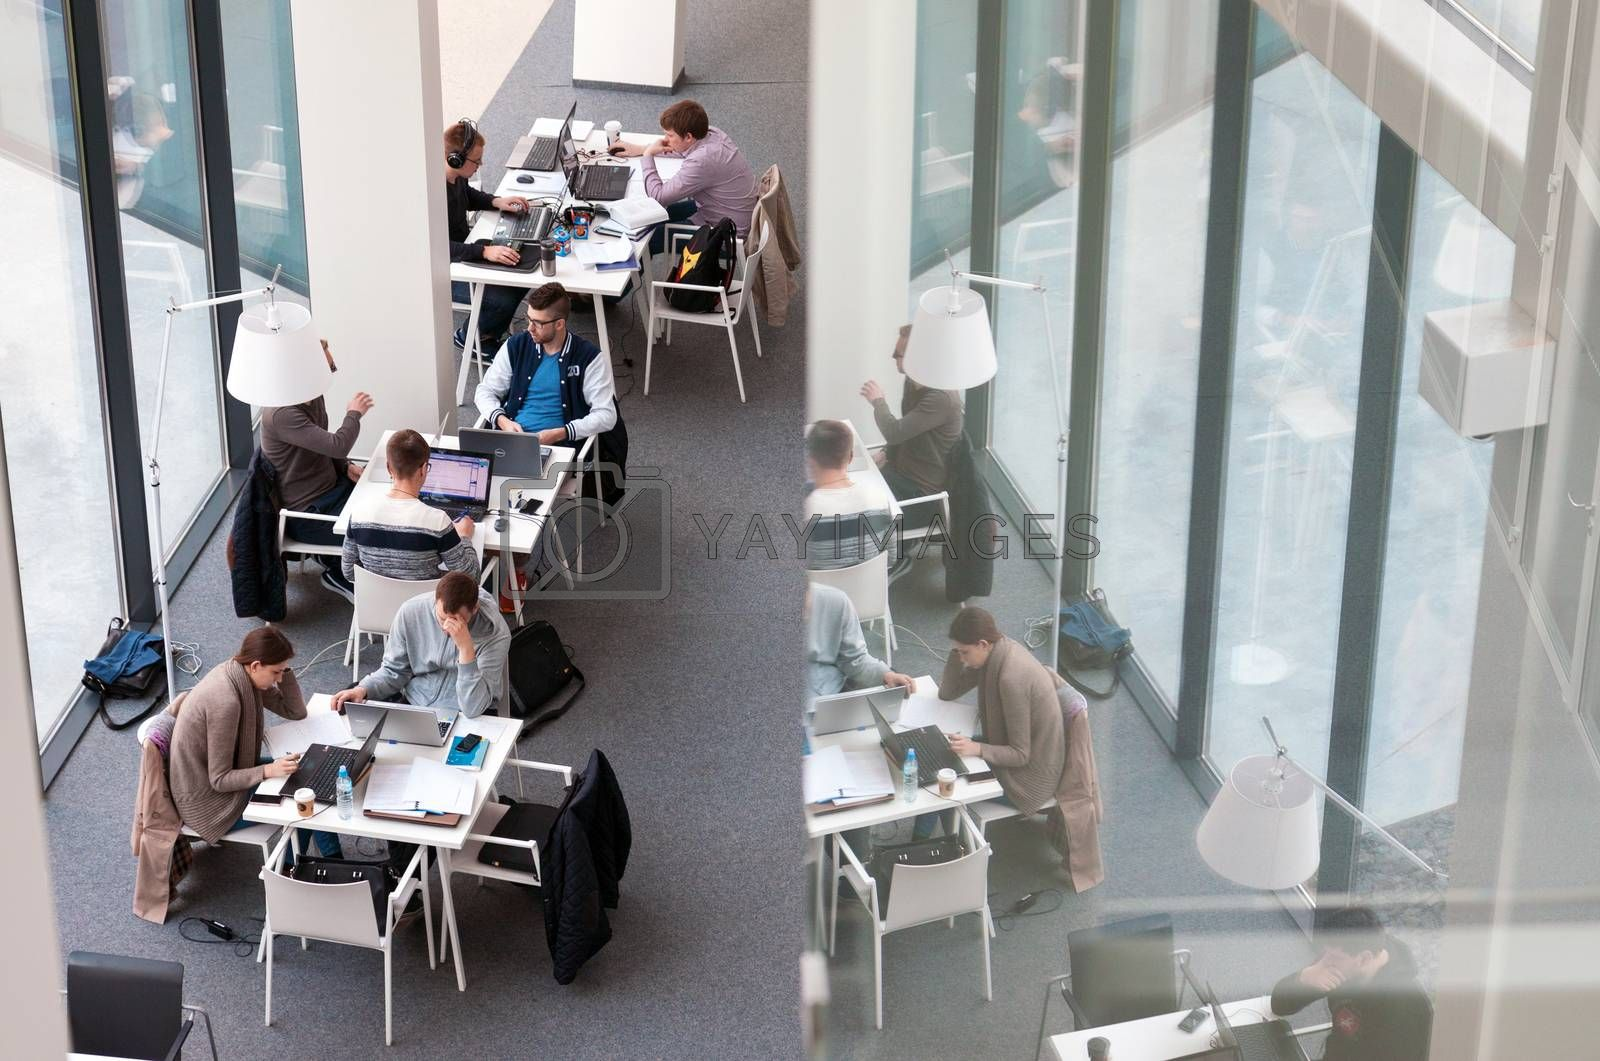 VILNIUS, LITHUANIA - APRIL 23, 2016: Students sitting and studying at Vilnius University library, Lithuania